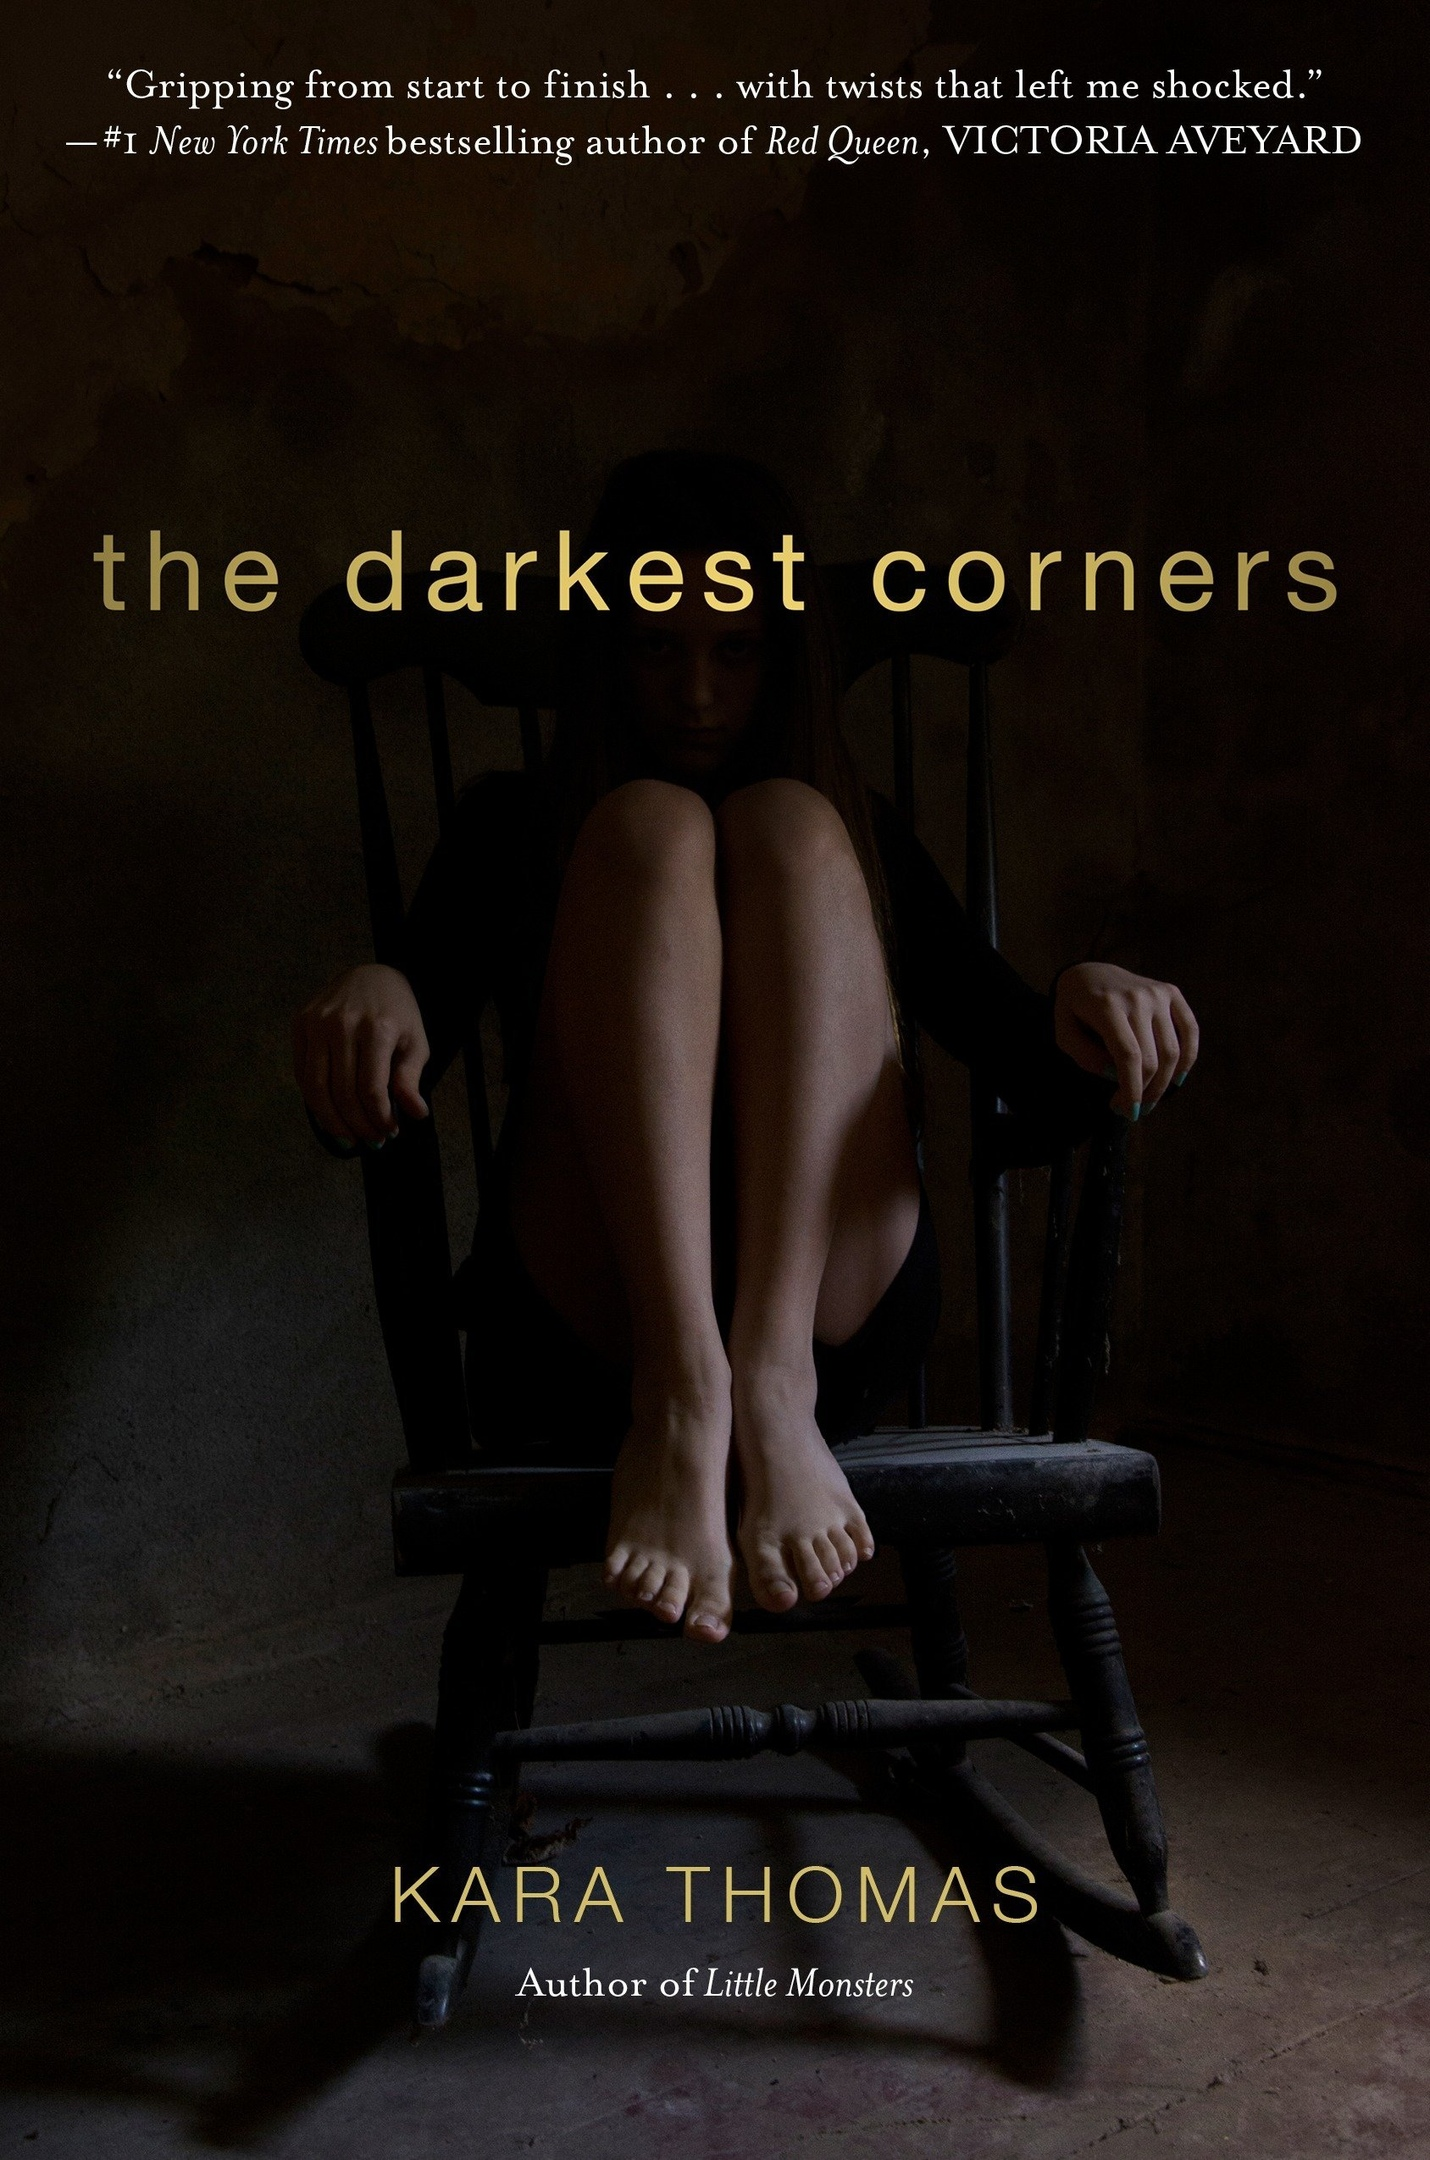 Kara Thomas – The Darkest Corners Genre: